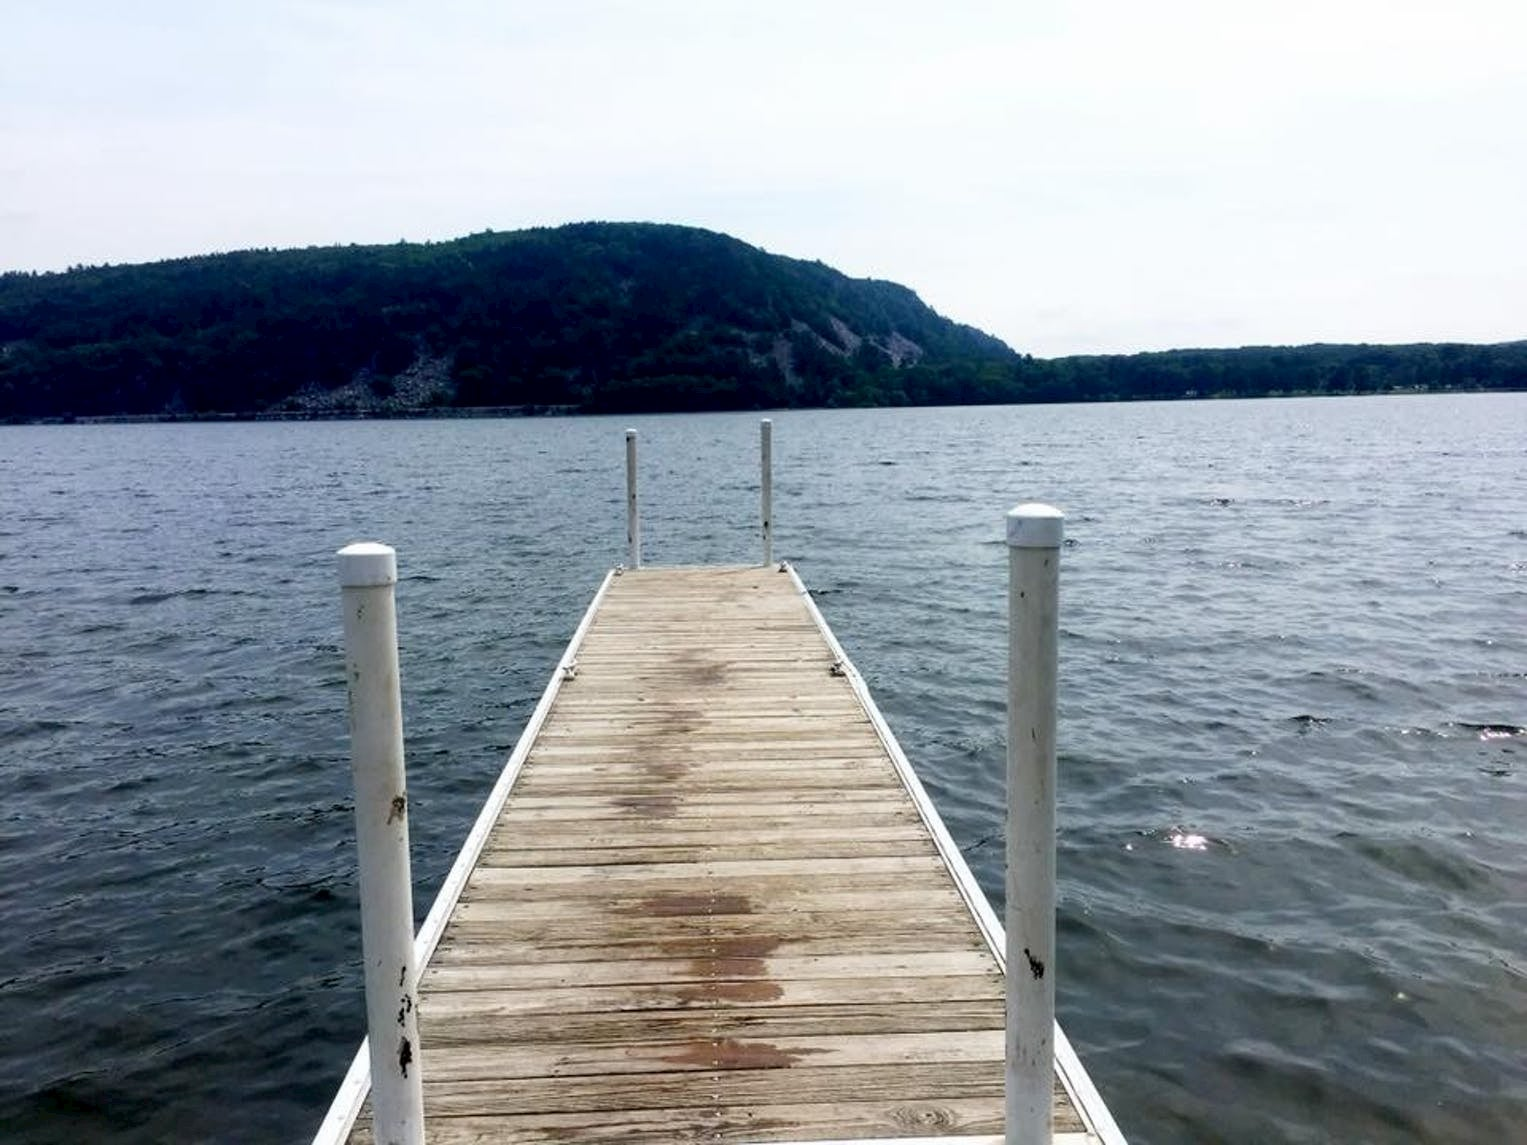 Dock stretching out towards a lake surrounded by mountains.